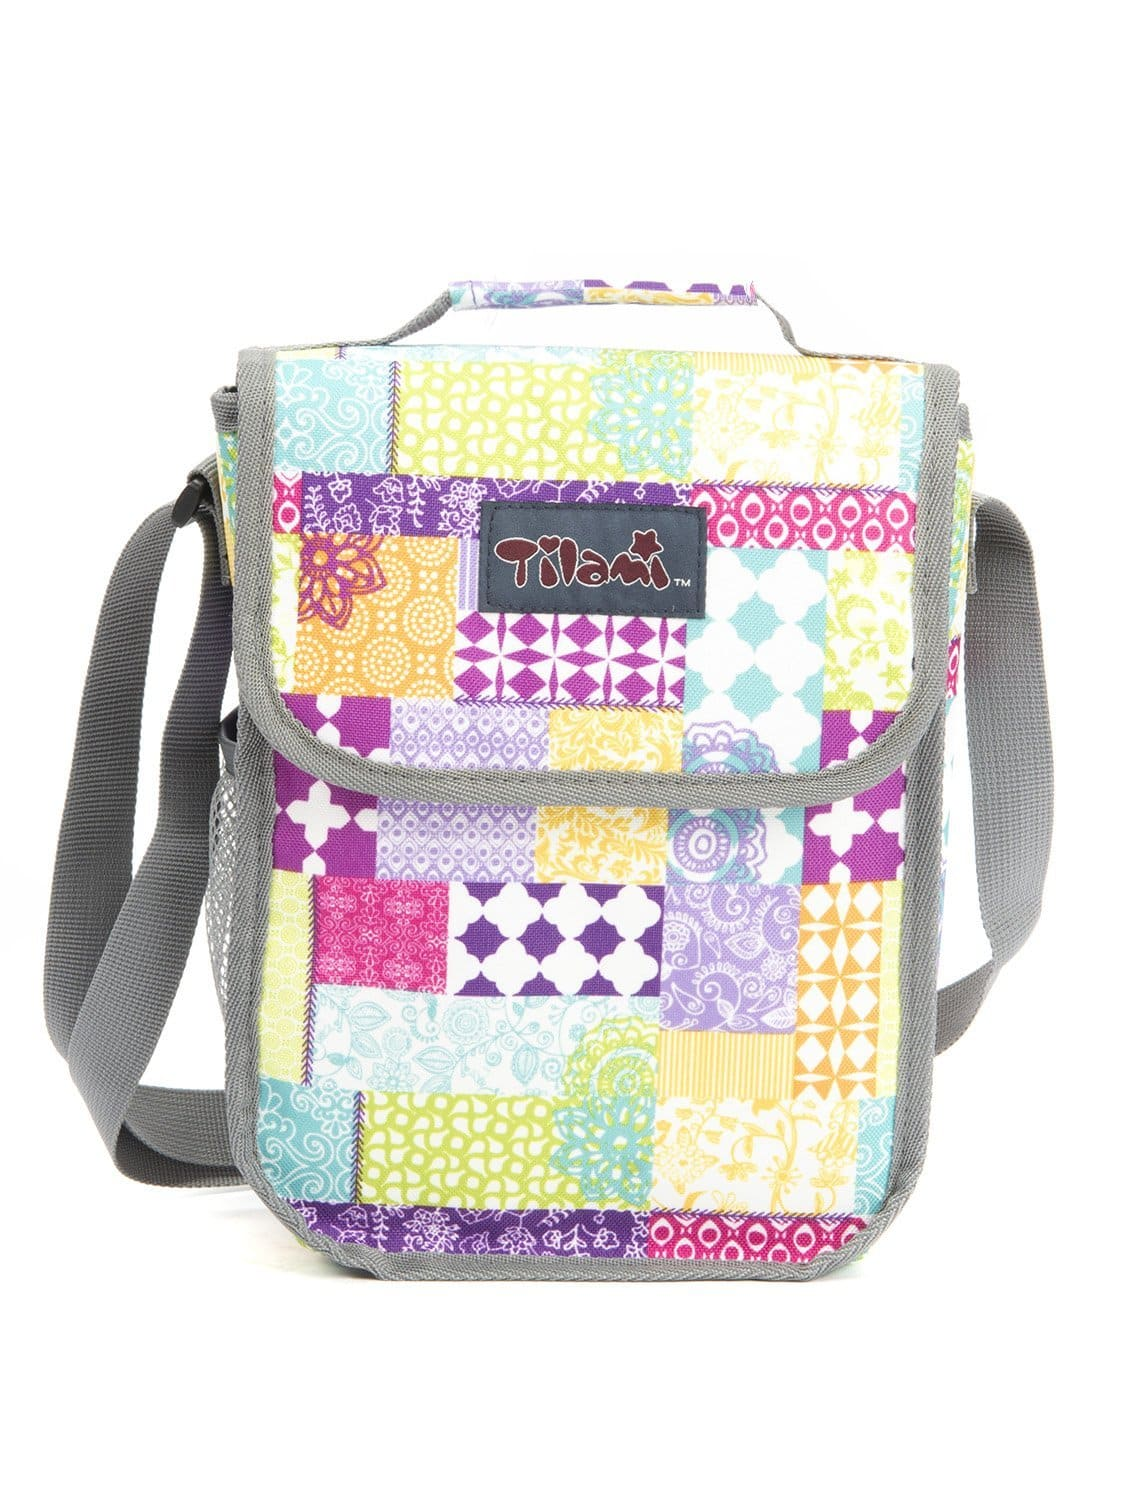 Insulated Lunch Bag Cooler Available in Multiple Colors $6.99 AC FS w/ Prime